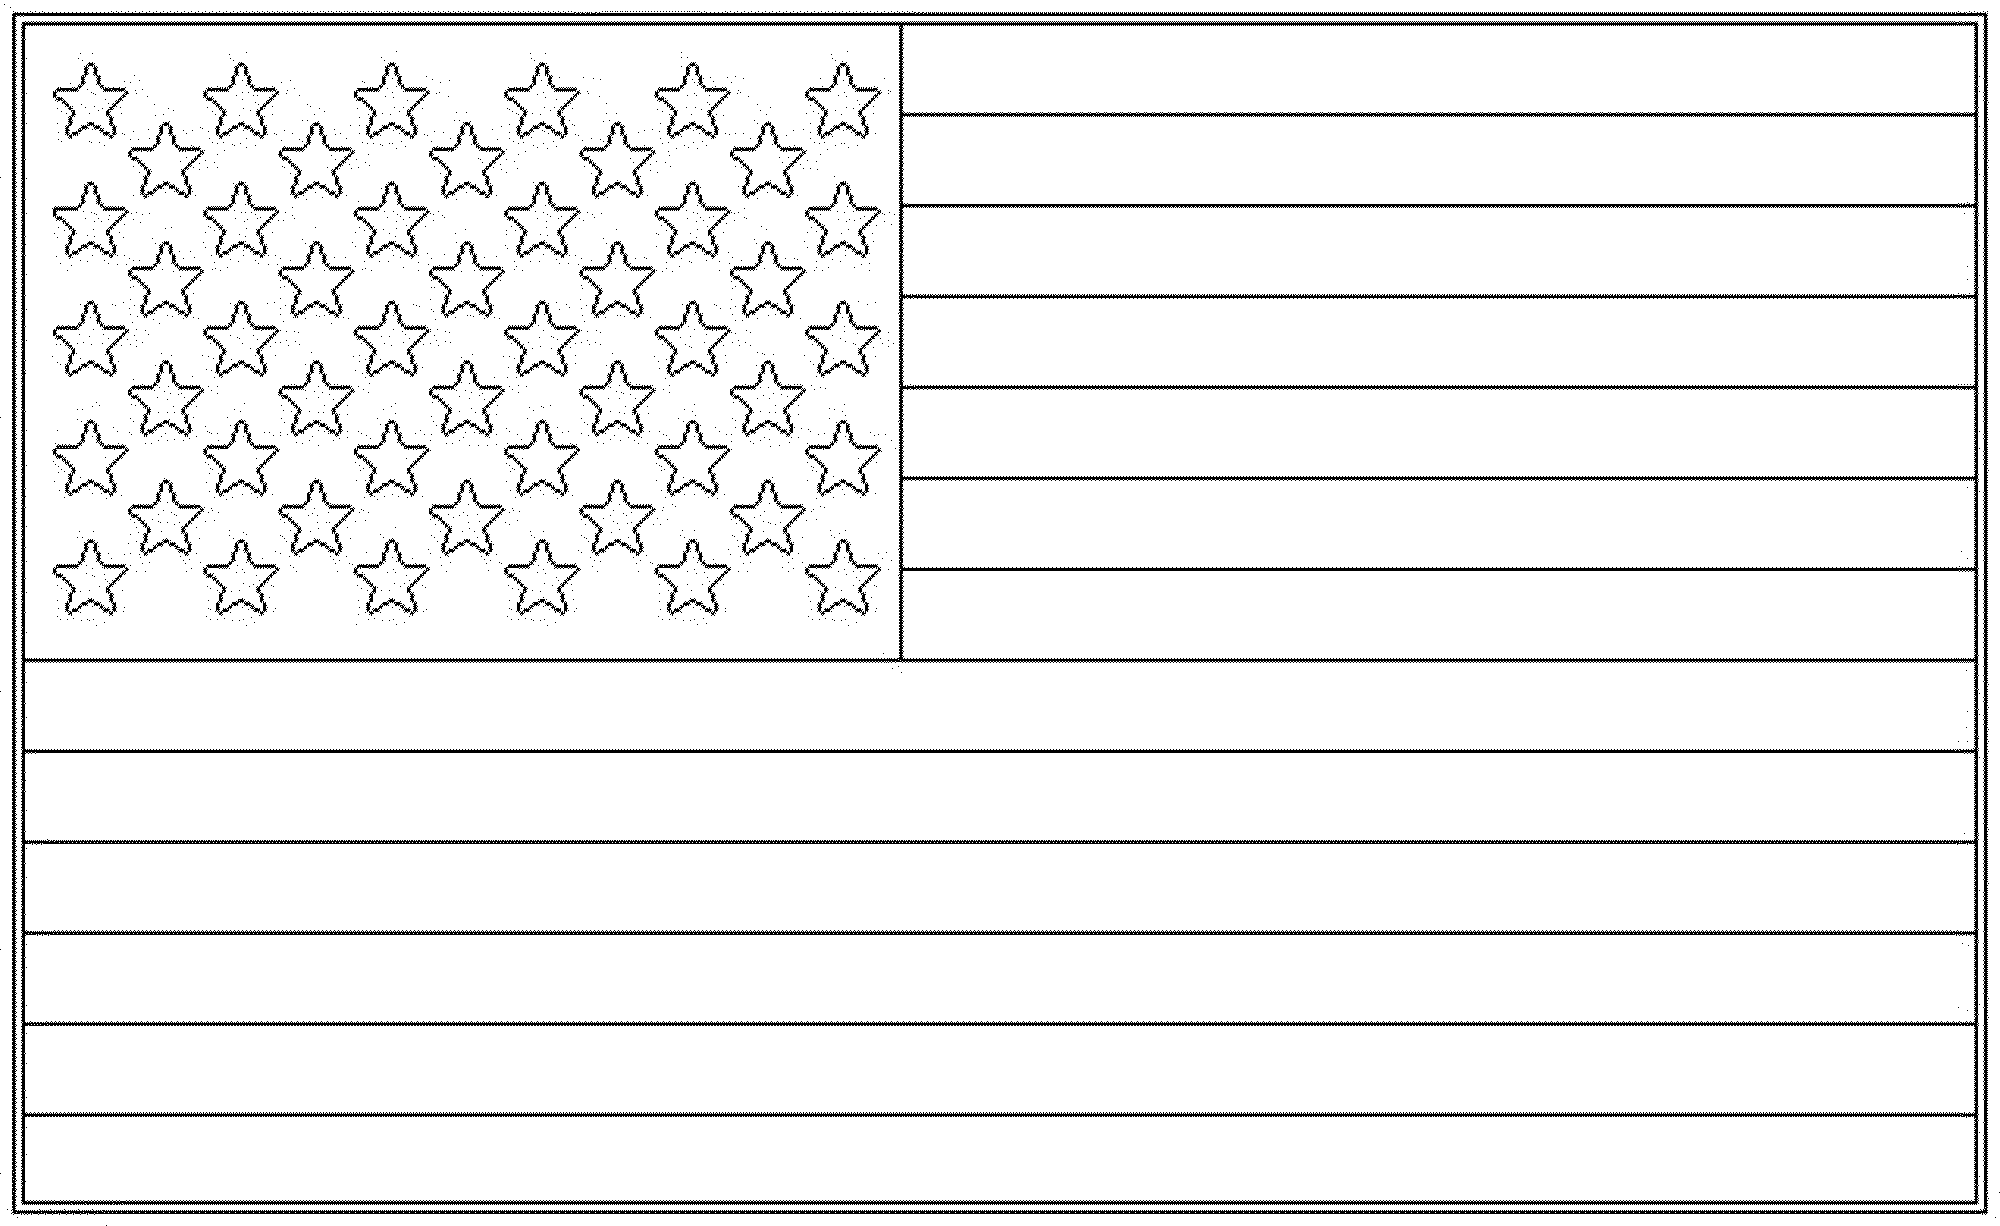 american flag coloring american flag coloring pages coloring pages to download coloring flag american